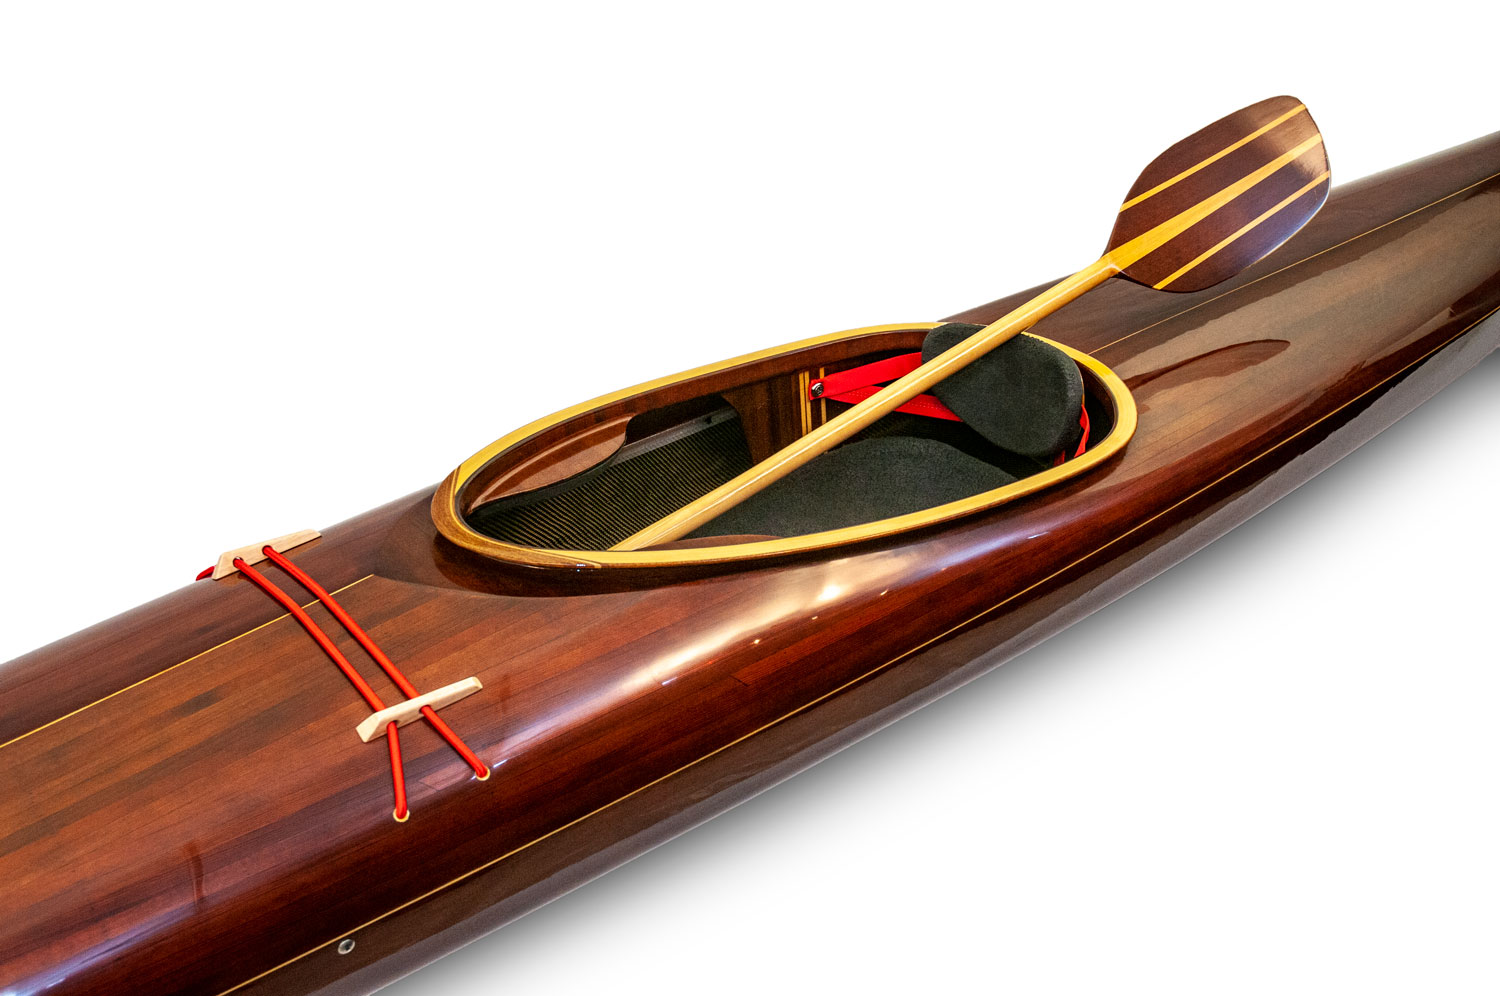 Wooden Kayak with Paddle